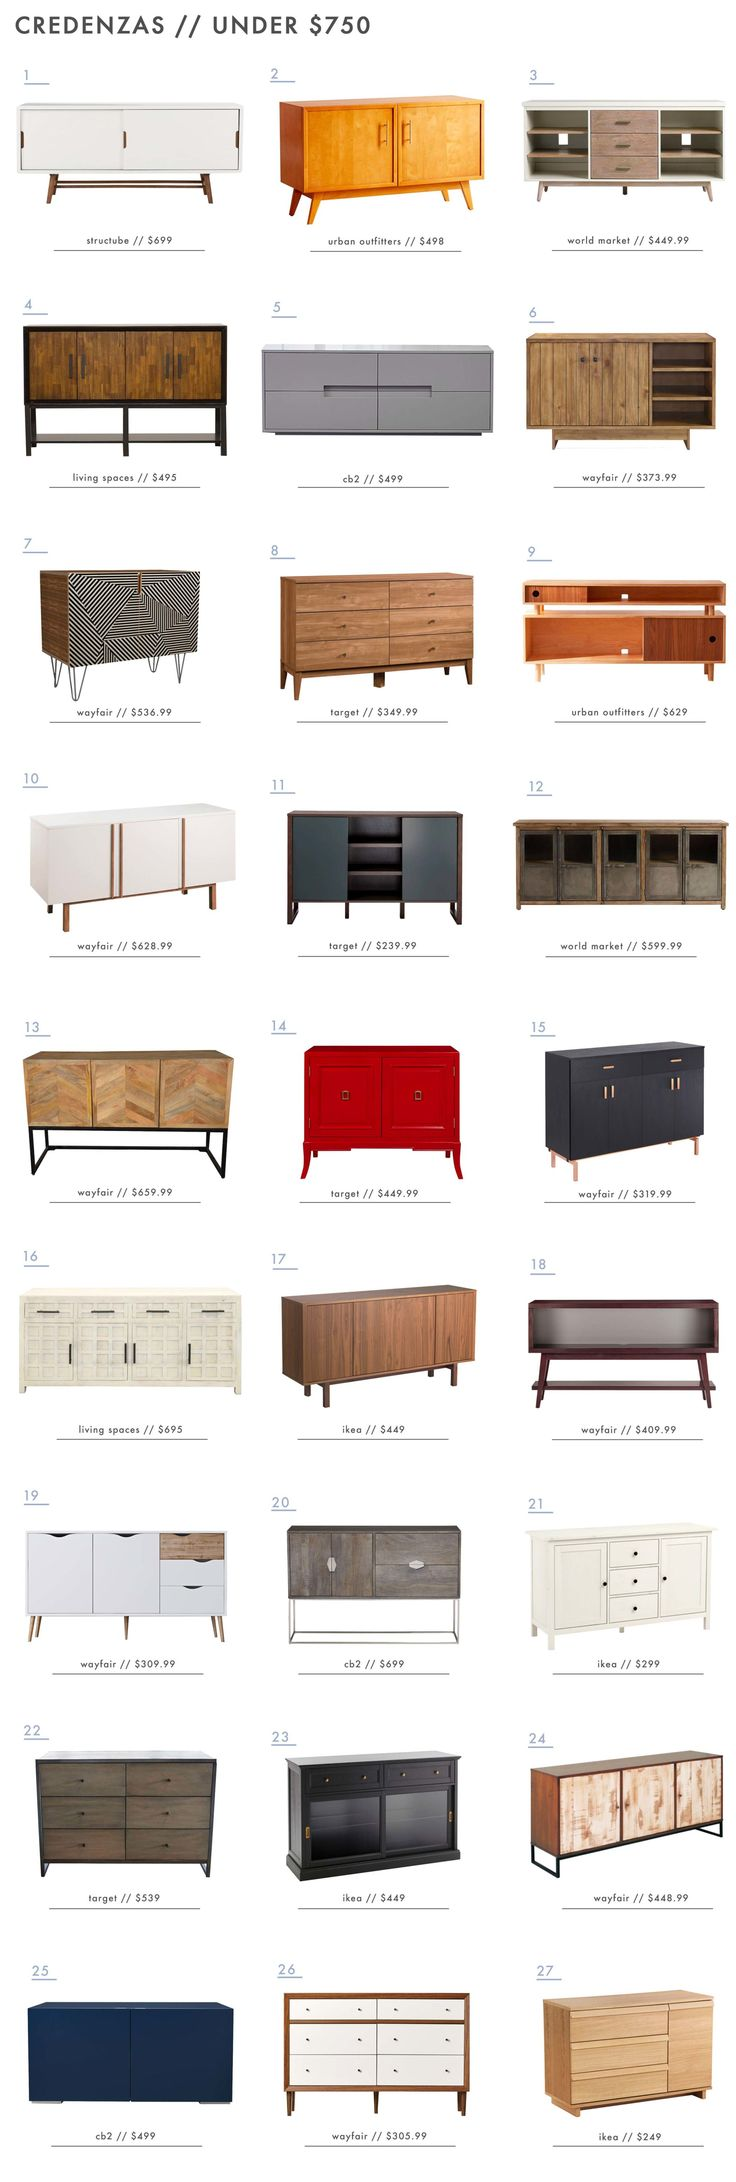 Best credenzas under $700